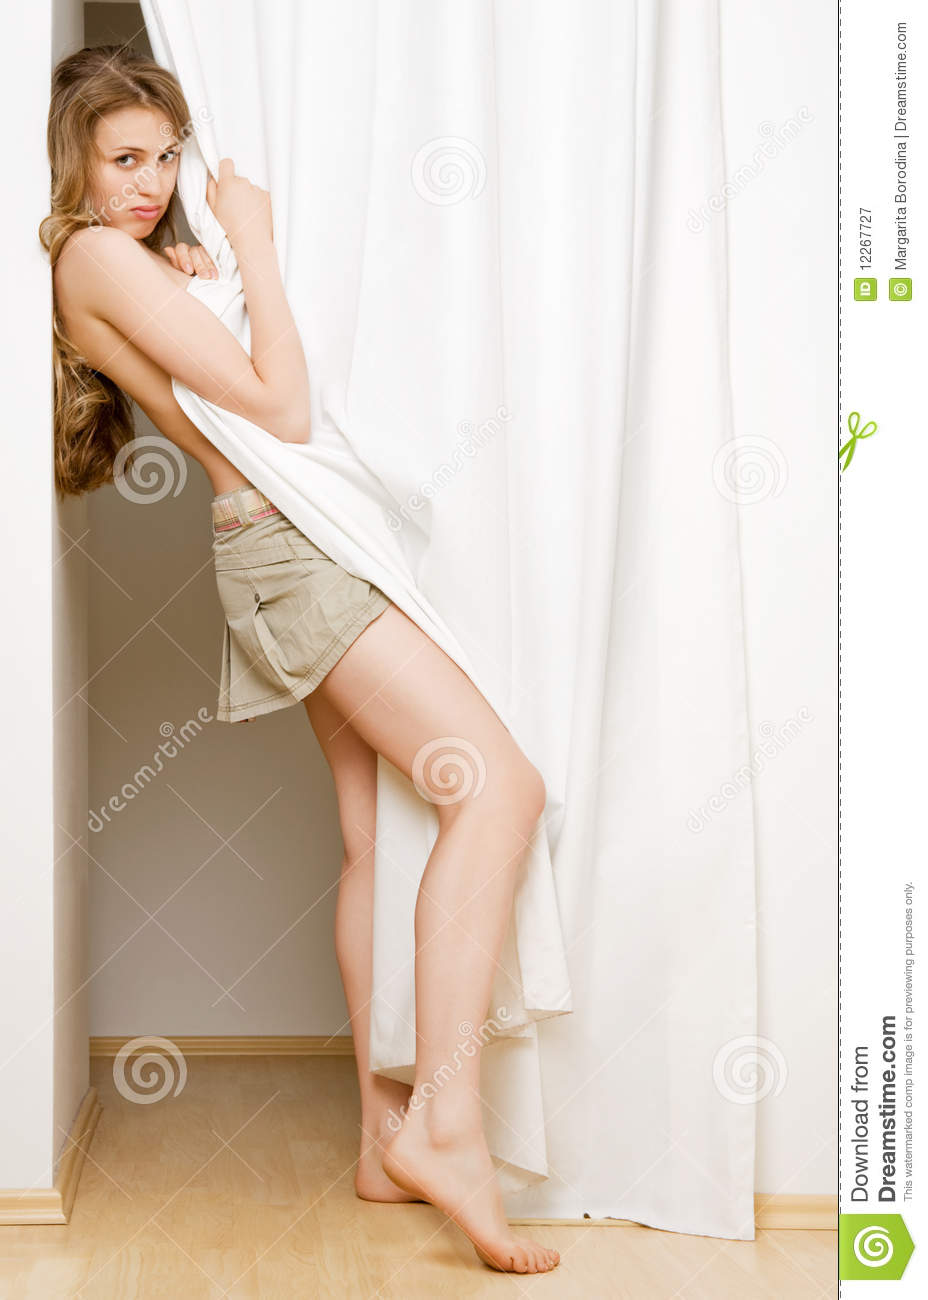 Young Woman Looking From Behind A White Curtain Stock